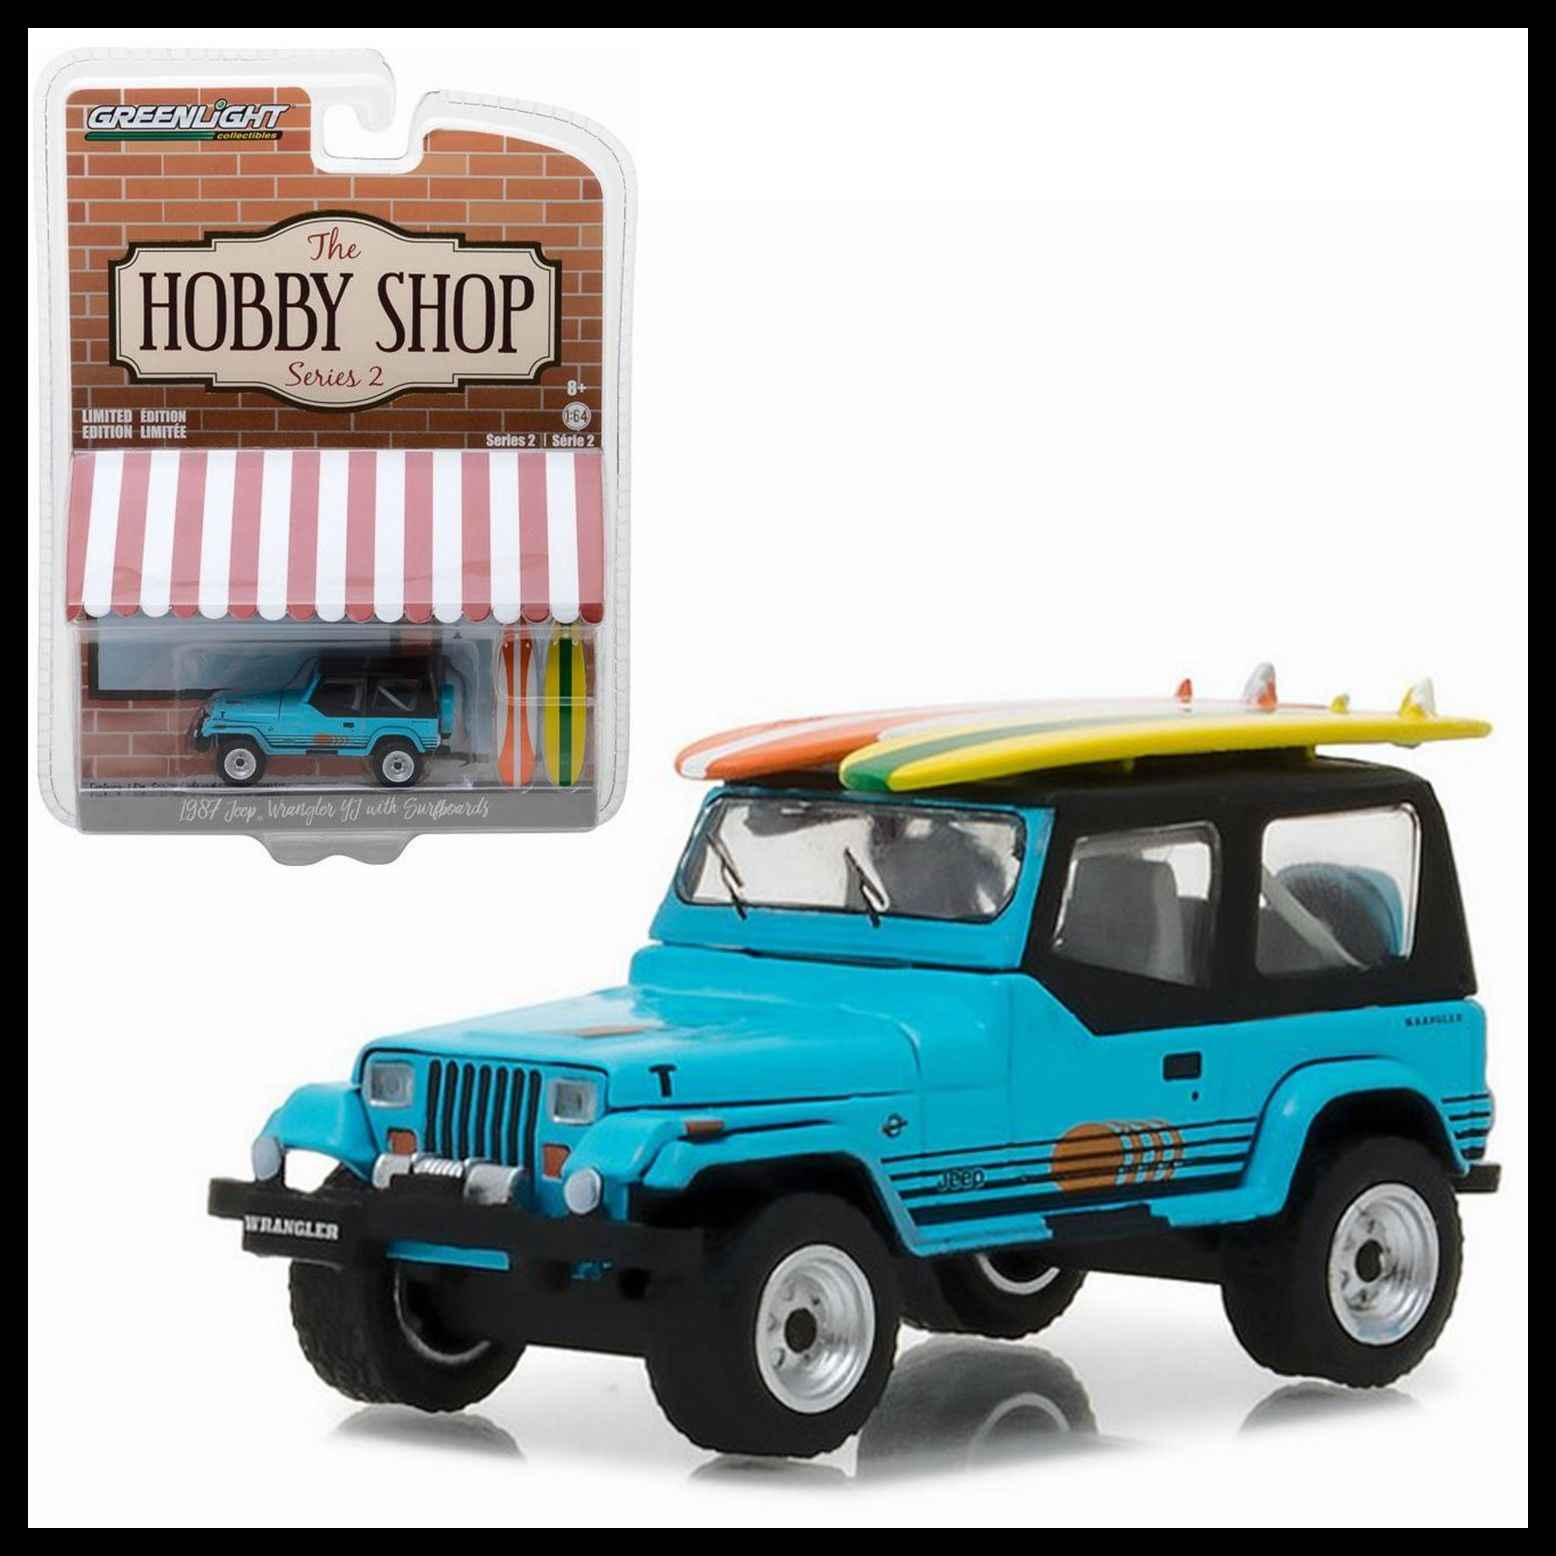 GL 1:64 1987 Jeep Wrangler YJ with Surfboard alloy model Car Diecast Metal Toys Birthday Gift For Kids Boy